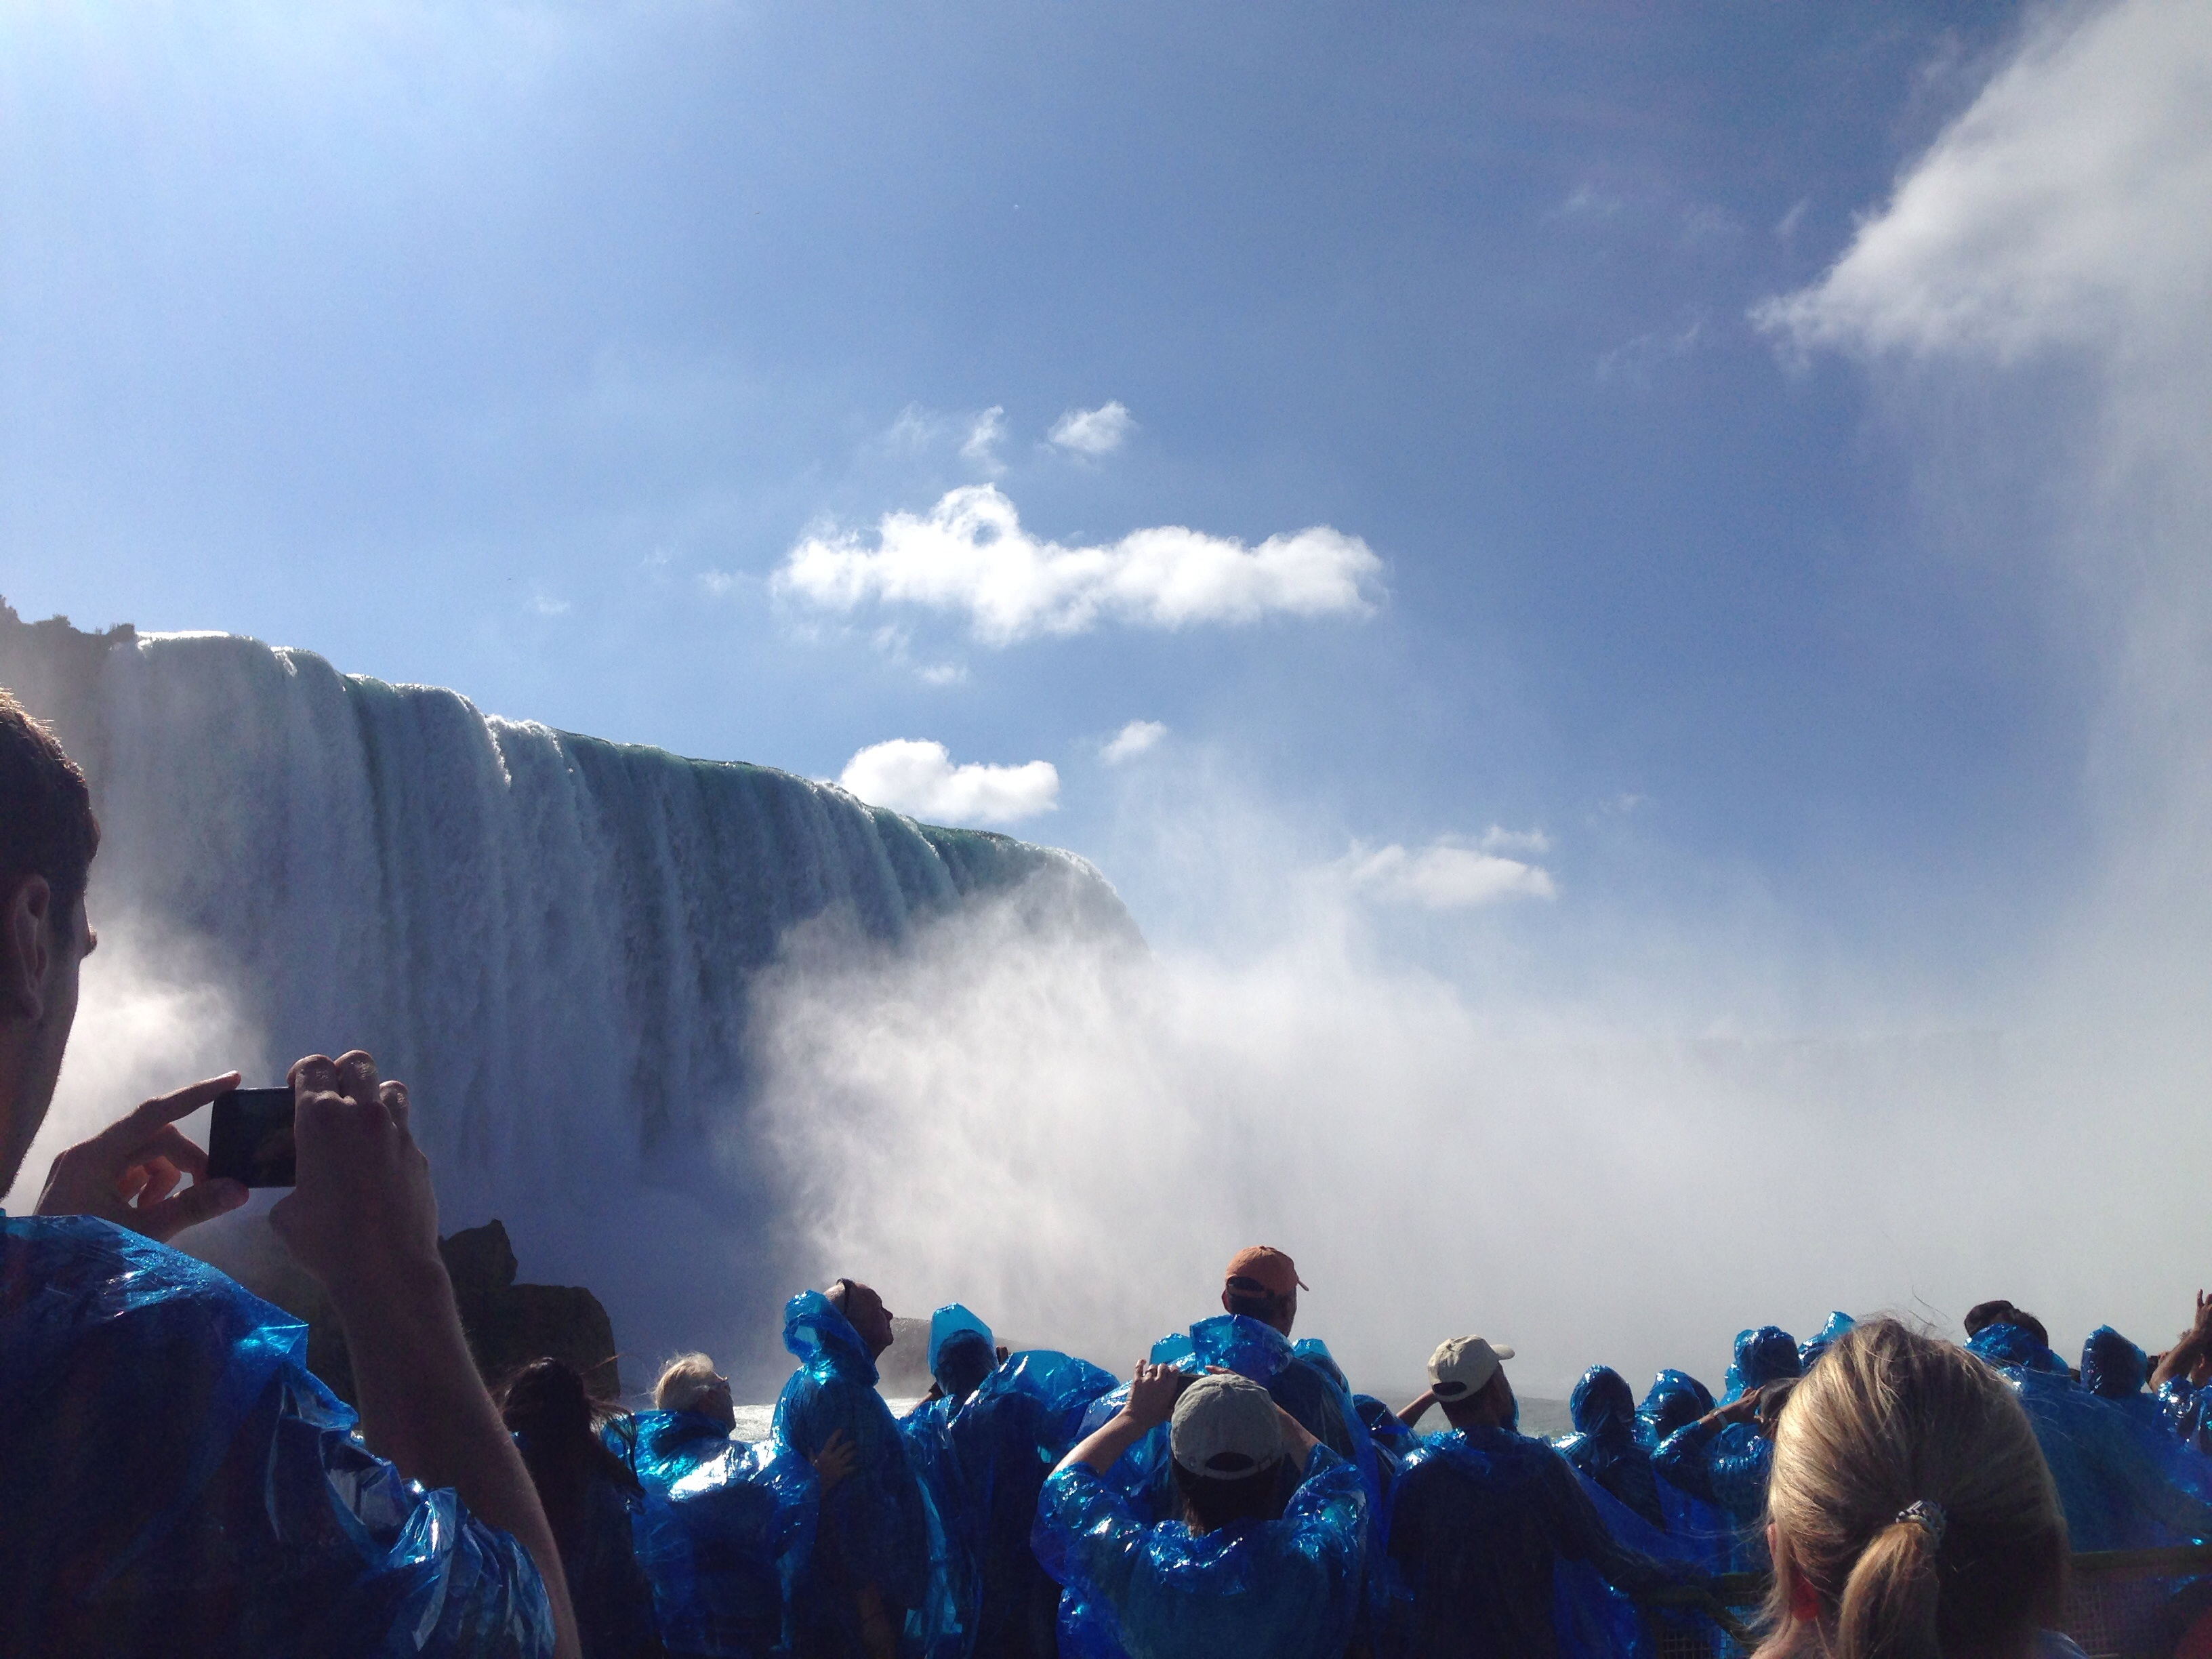 tours to niagara falls from new york city tourism essay Escape the bustle of new york city on a 2-day excursion to niagara falls  2- day niagara falls and shopping trip from new york city  review summary.